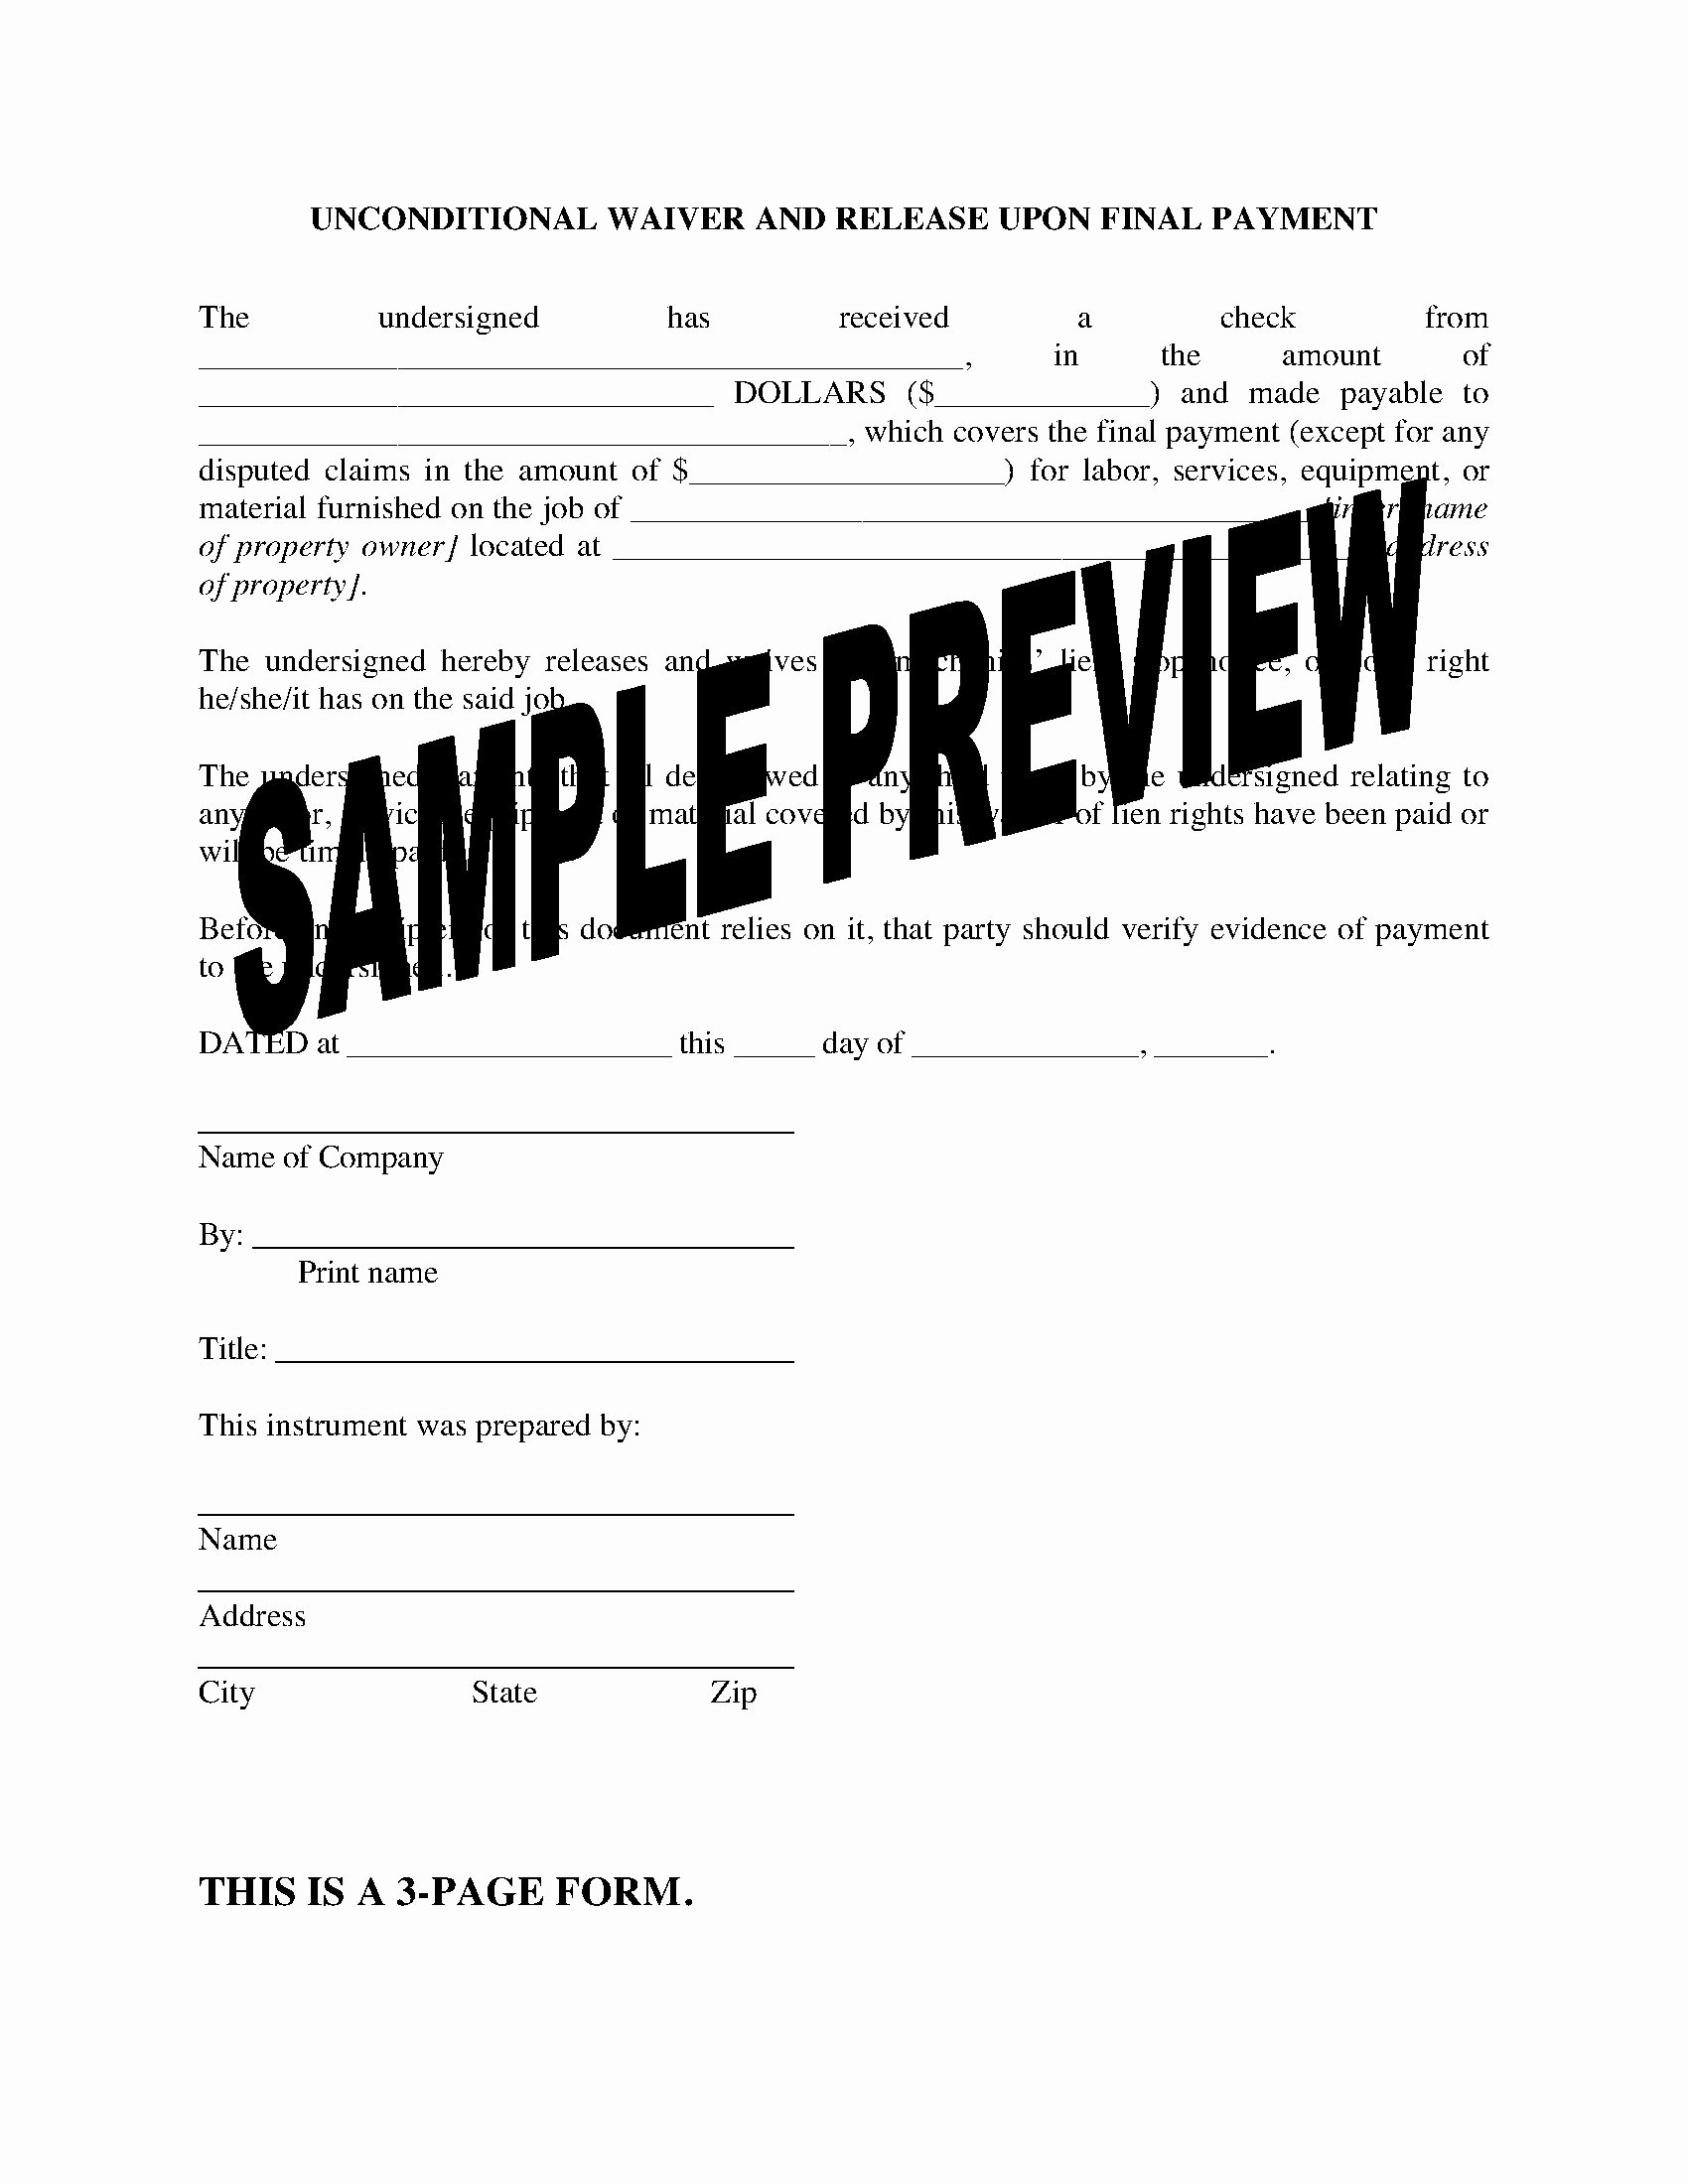 Final Lien Waiver Template Elegant Colorado Unconditional Lien Waiver and Release On Final